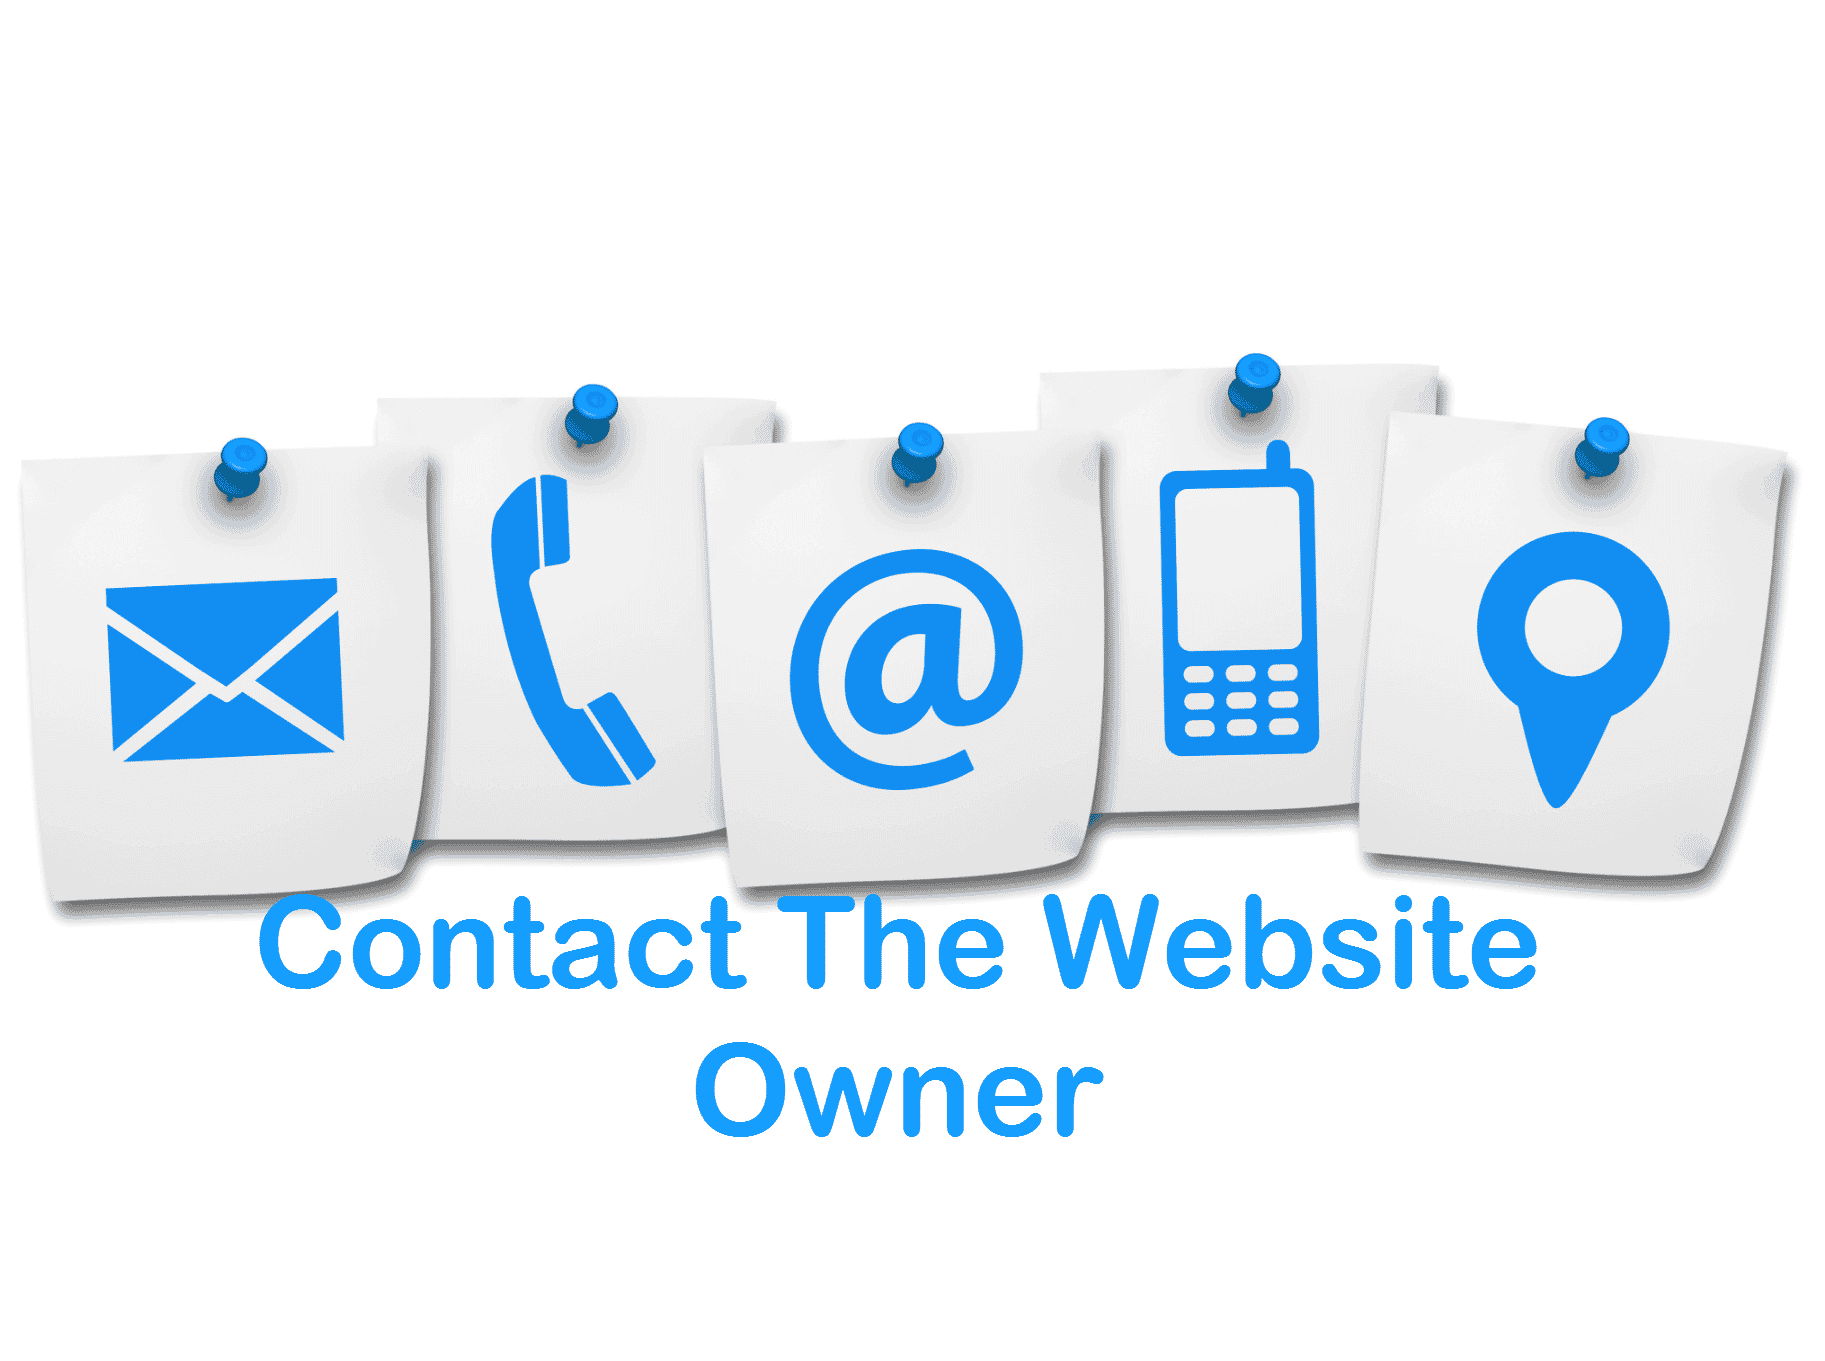 How To Contact Or Find The Website Owner Email Address